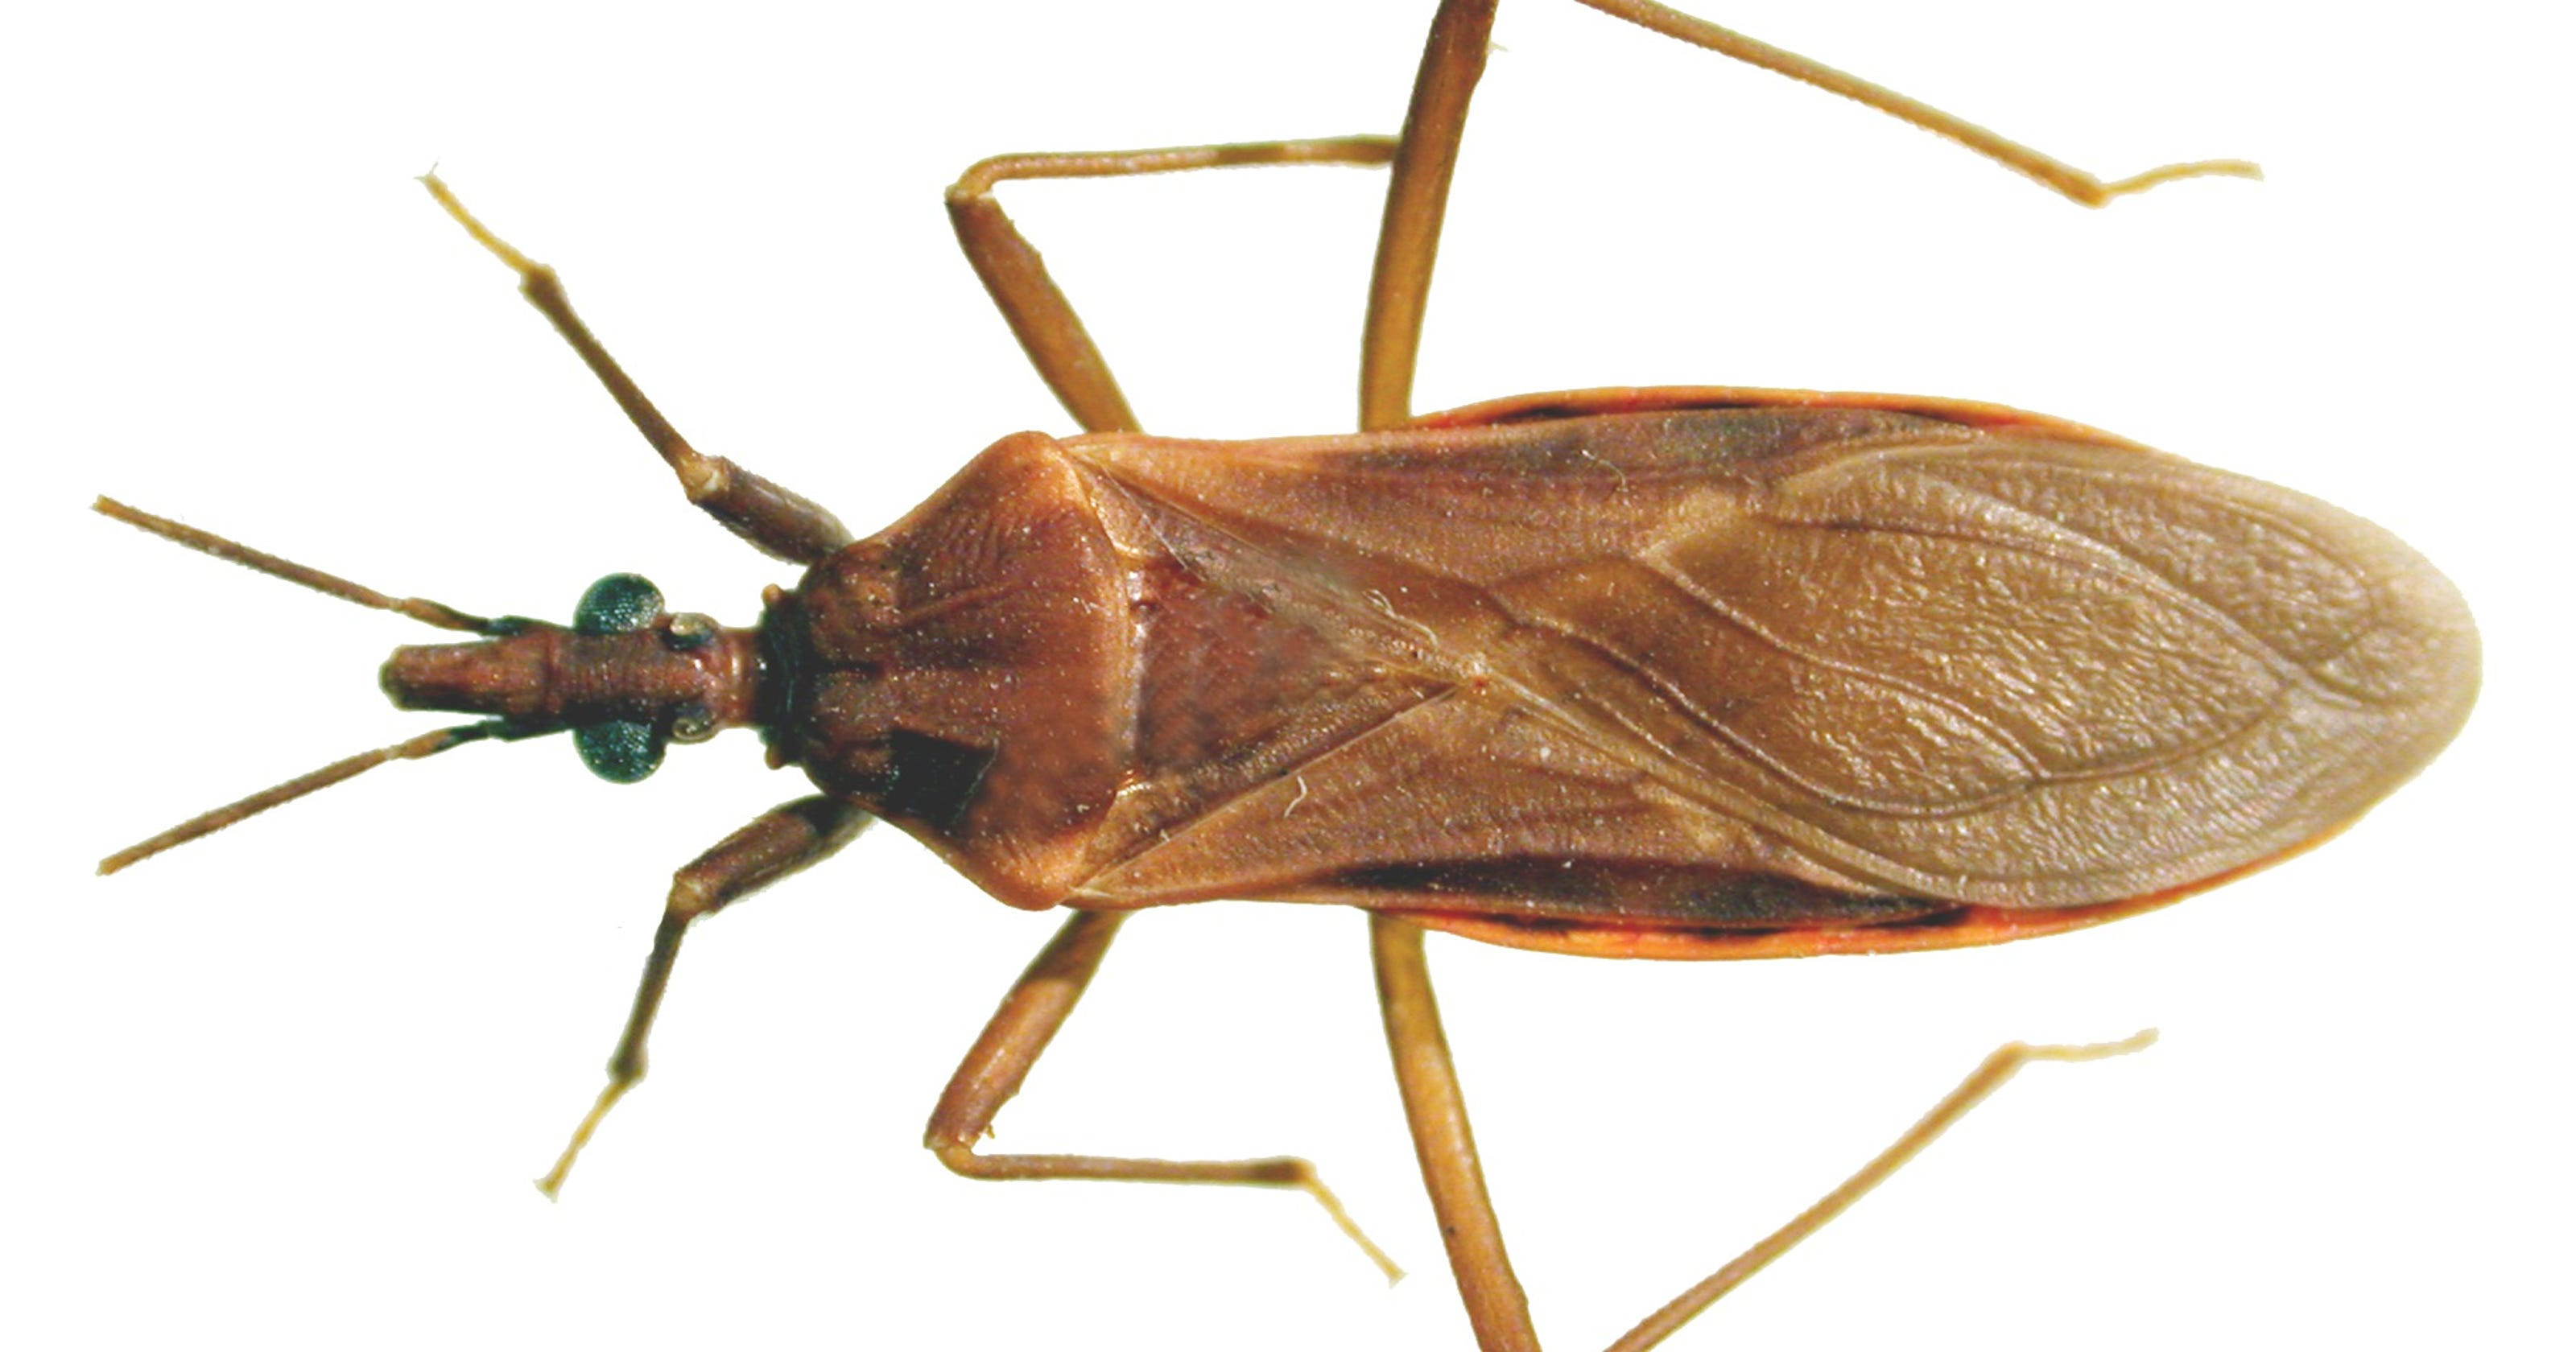 What you should know about Arizona's 'kissing bug'